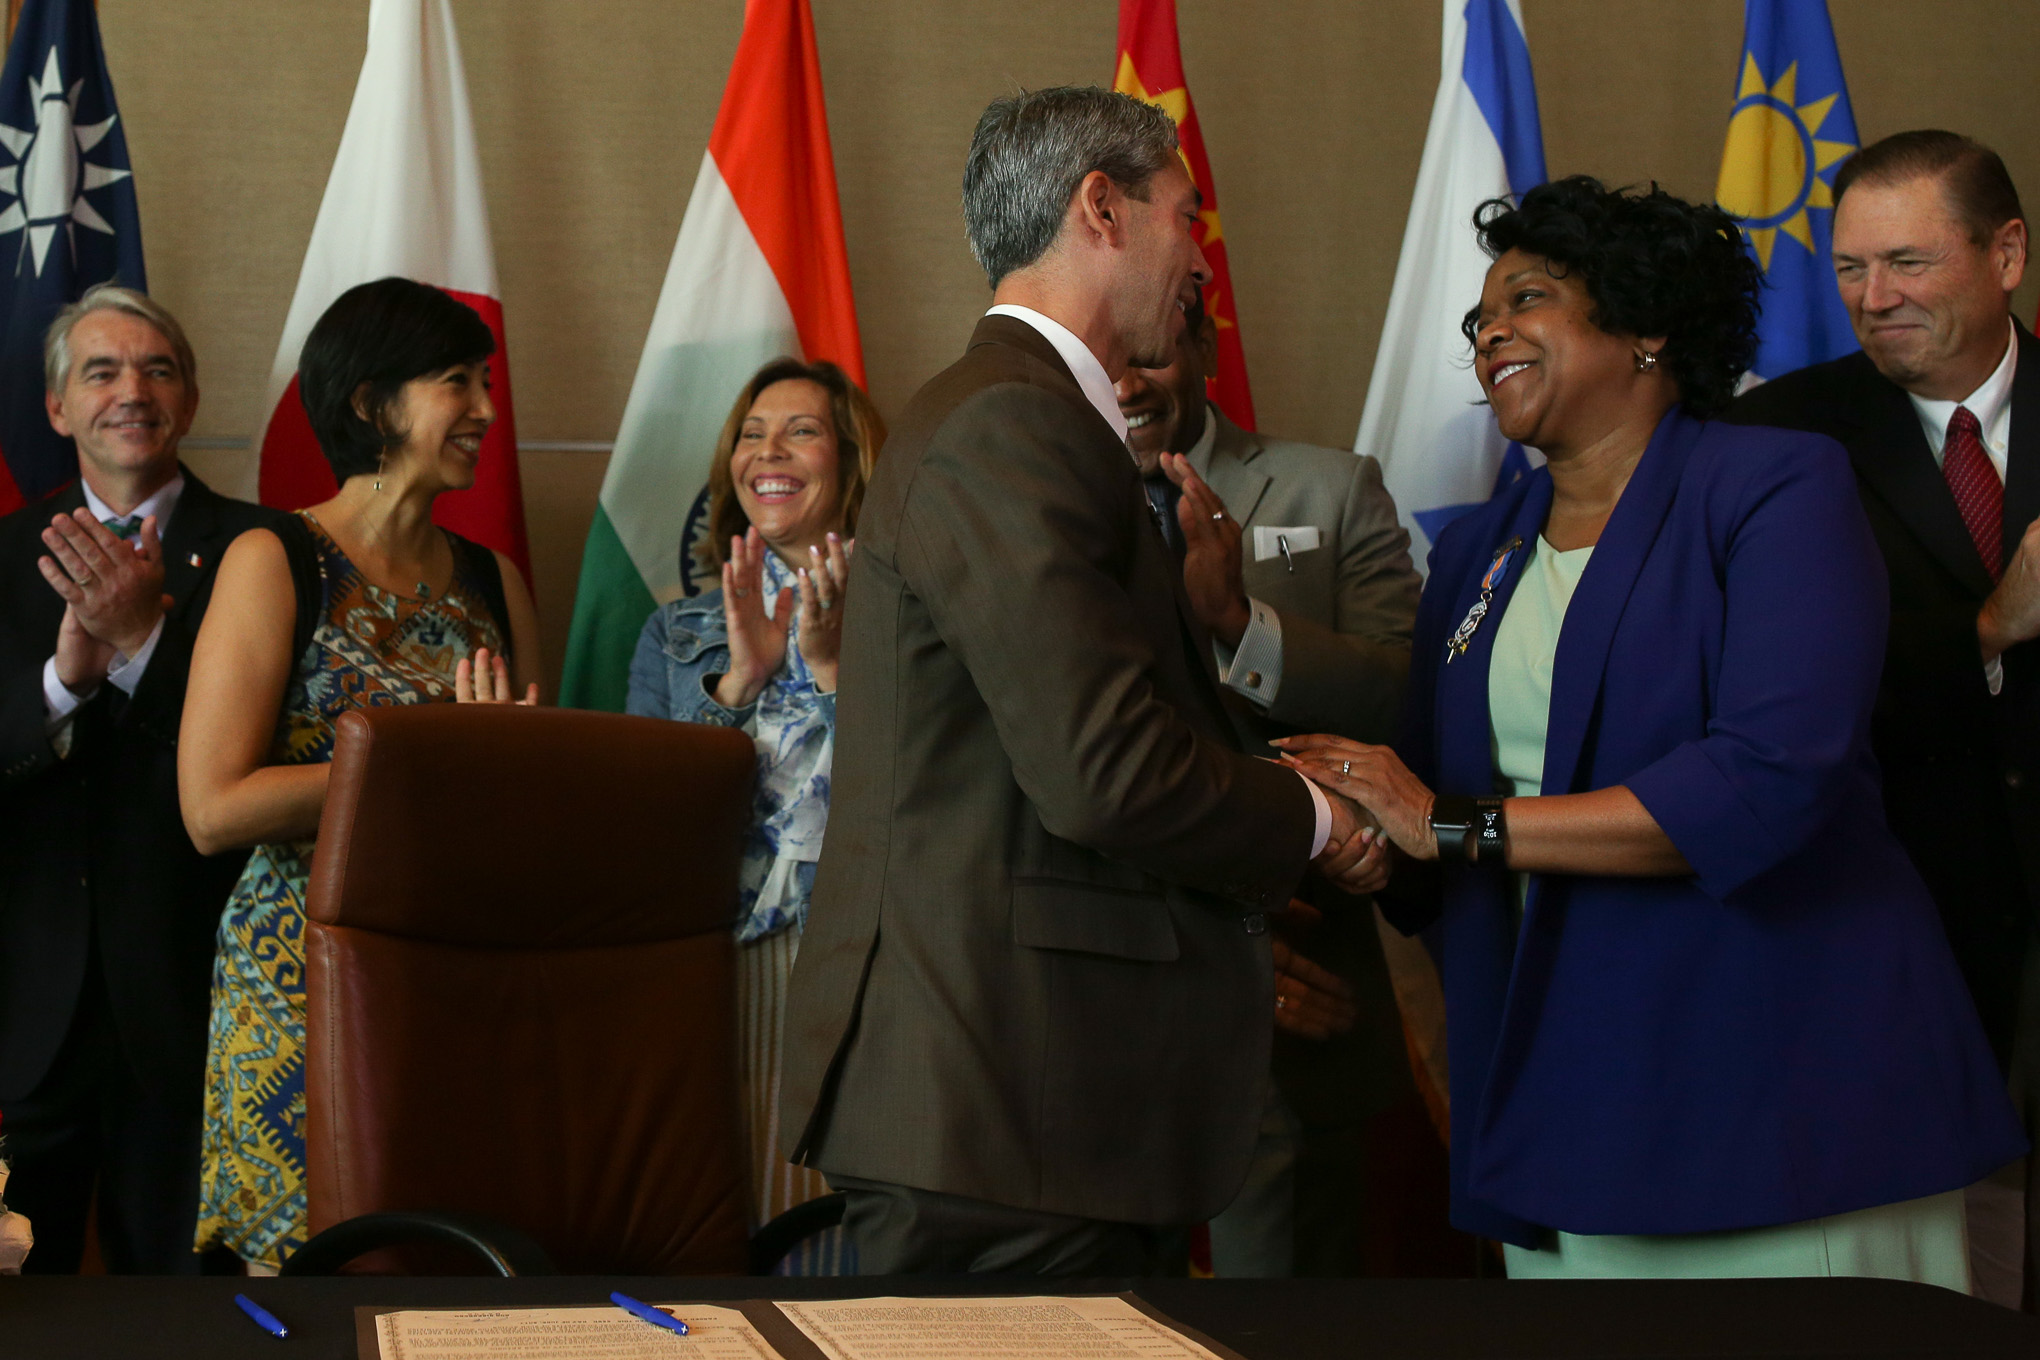 Mayor Ron Nirenberg with CPS Energy President and CEO Paula Gold-Williams following the signing a resolution in support of the Paris Agreement.